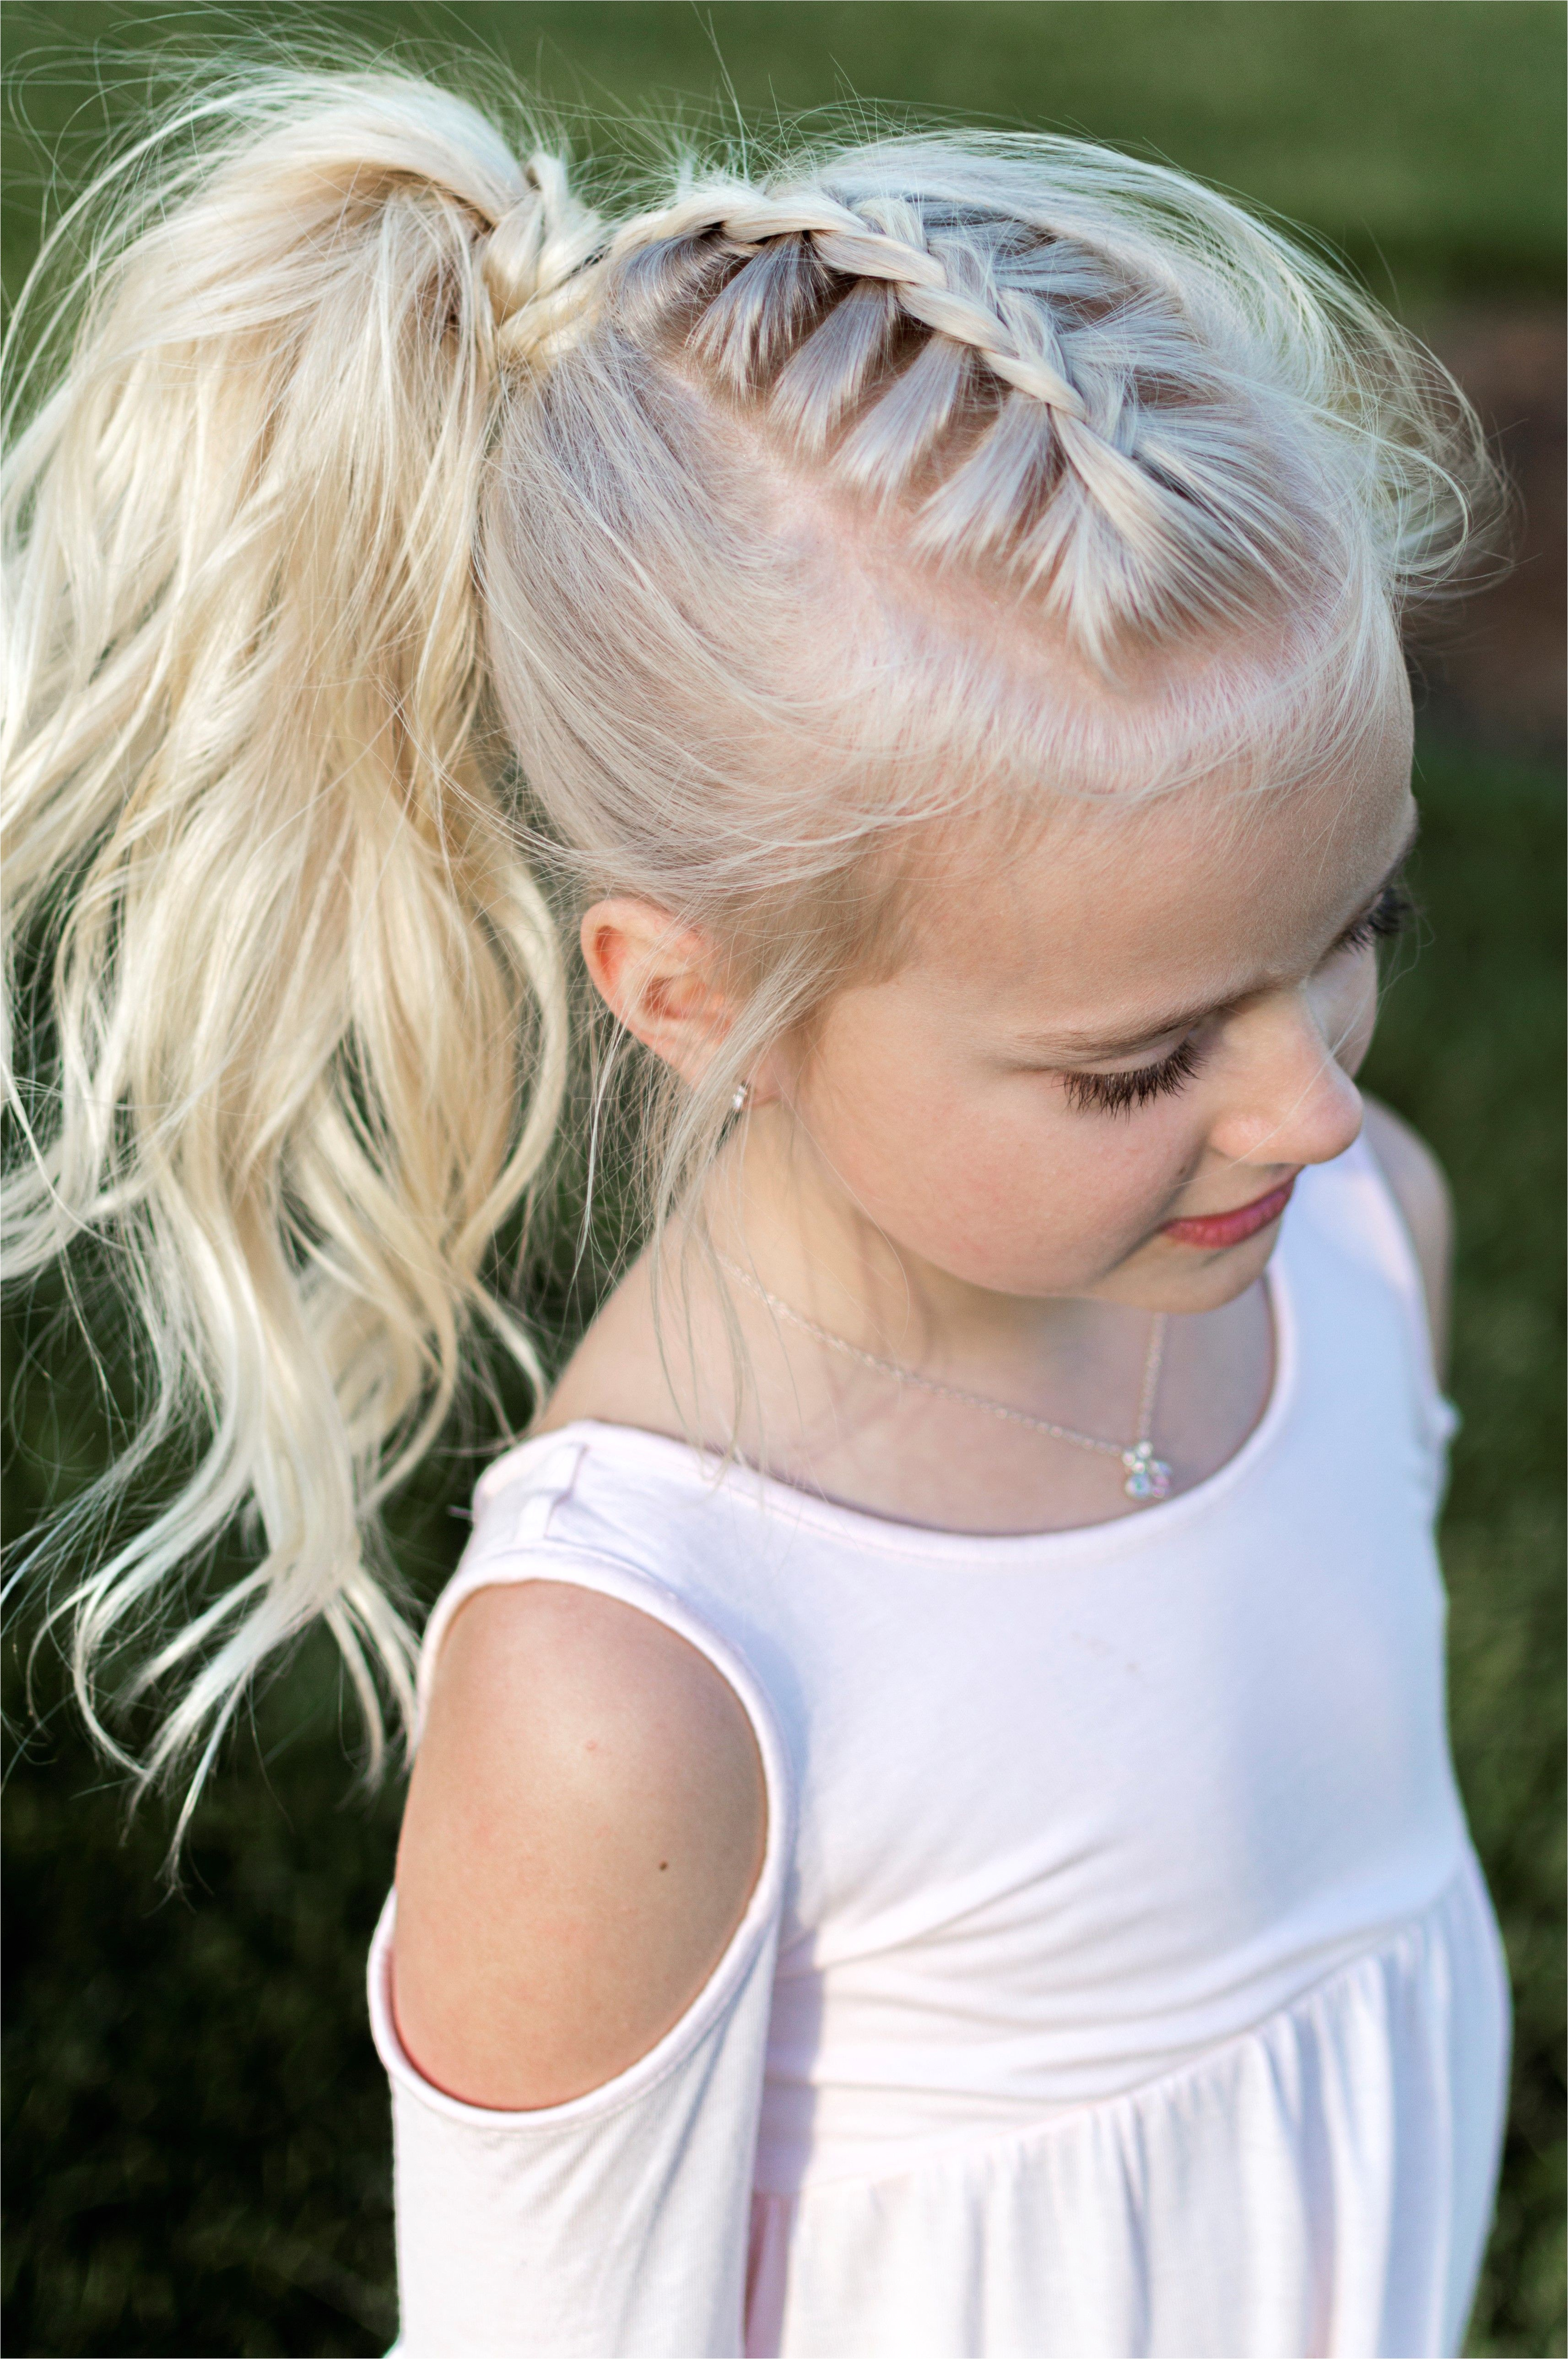 Hairstyles for Girls for Wedding Beautiful Little Girl Hairstyle French Braid Pony Tail Curls High Pony